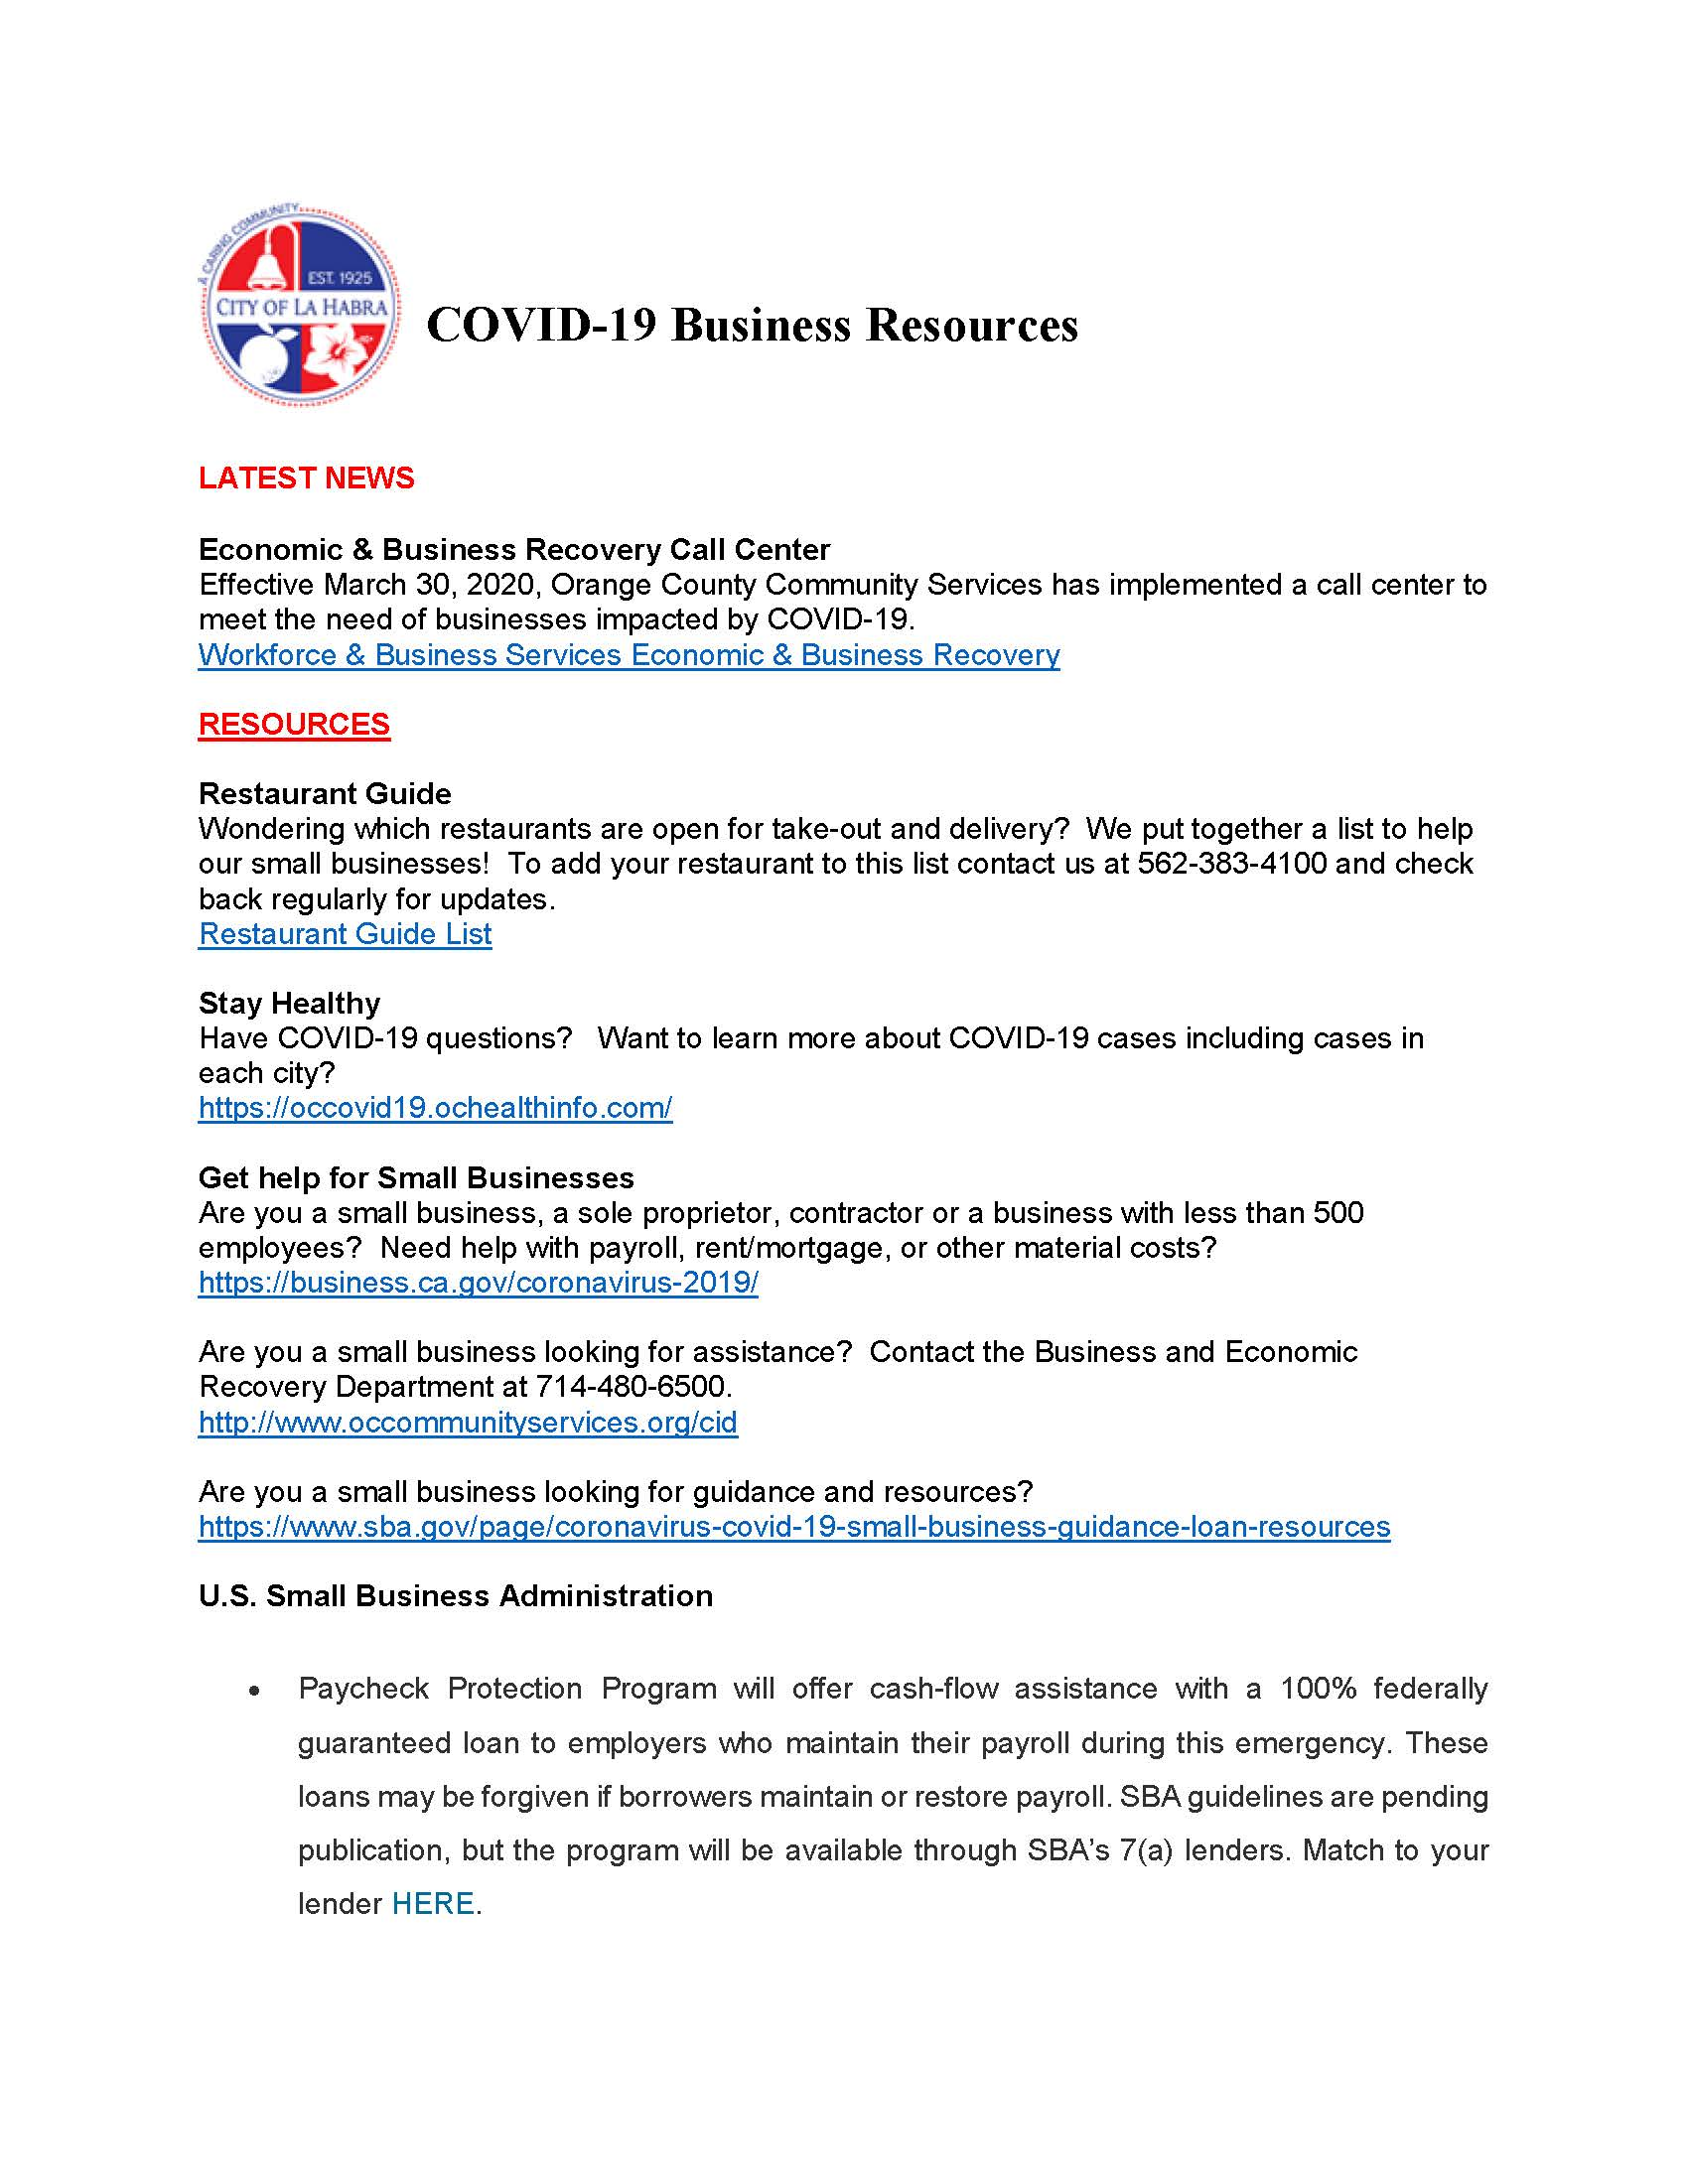 COVID-19 Business Resources PDF